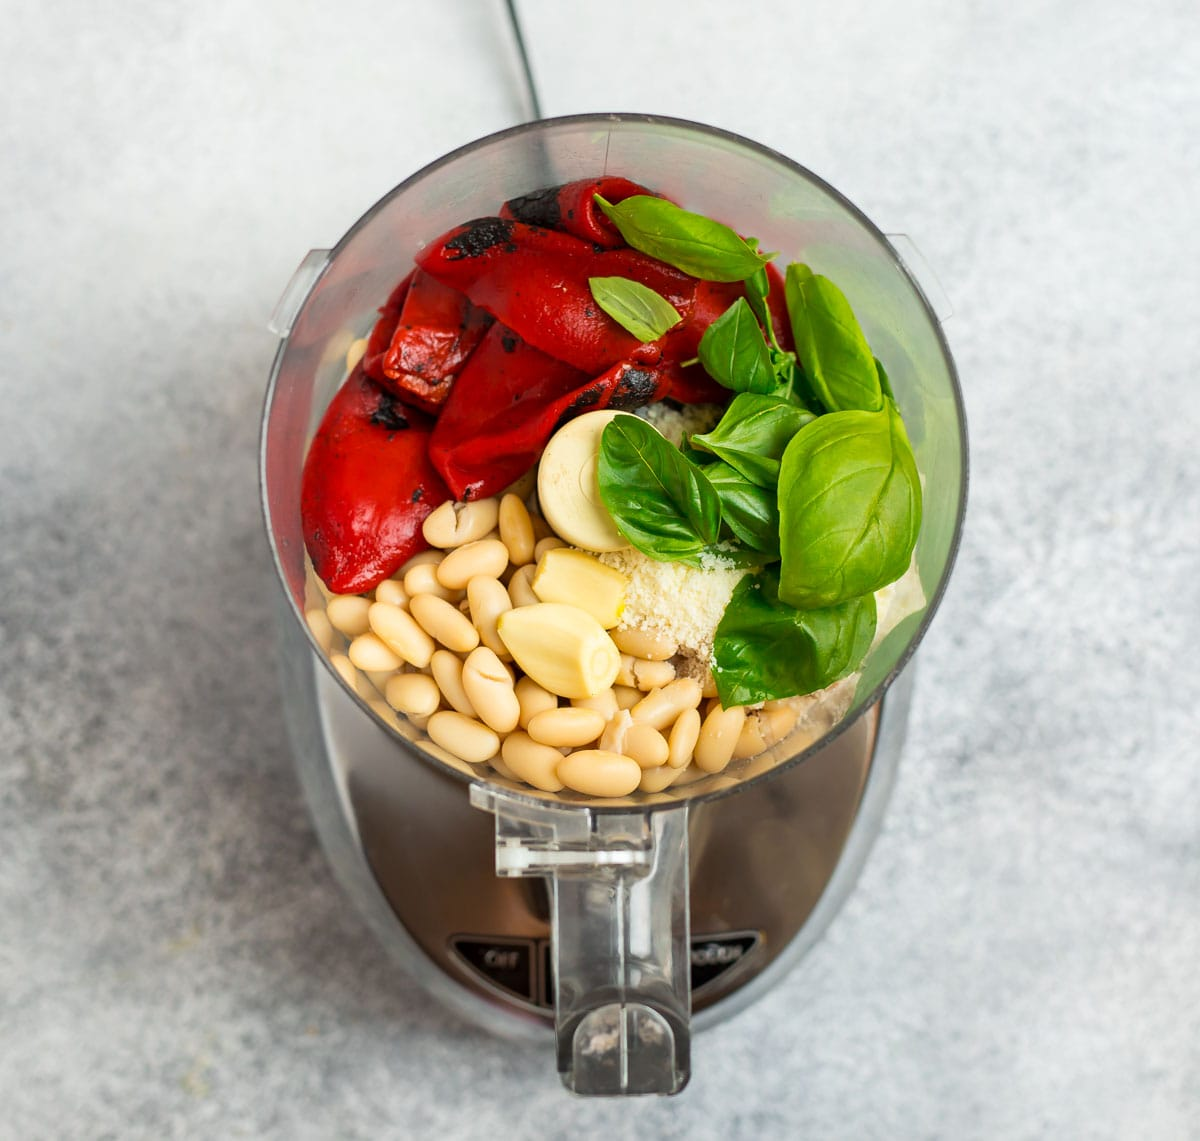 Ingredients for healthy dip in a food processor